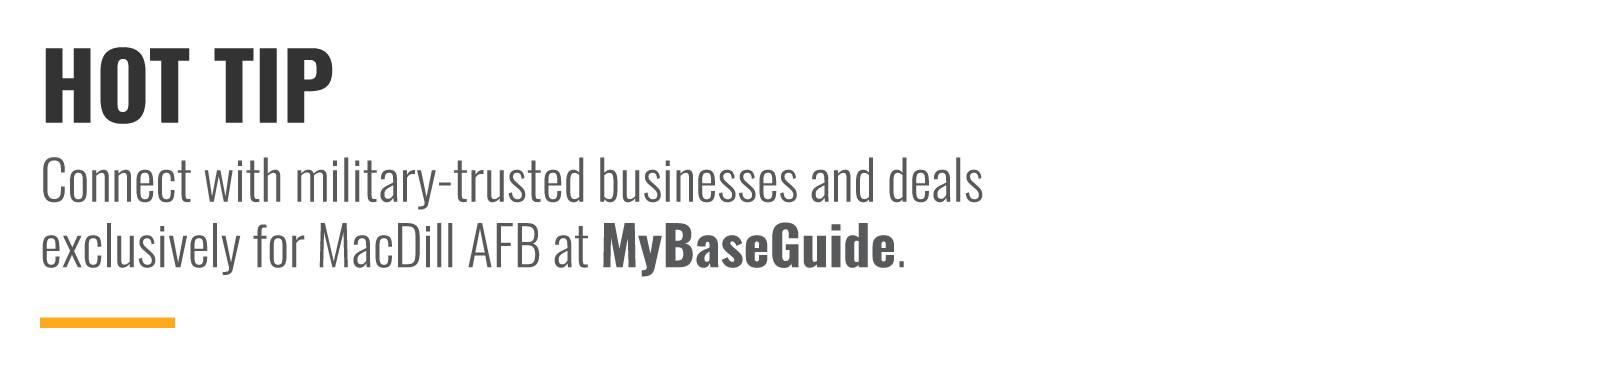 Connect with military-trusted businesses and deals exclusively at MyBaseGuide.com